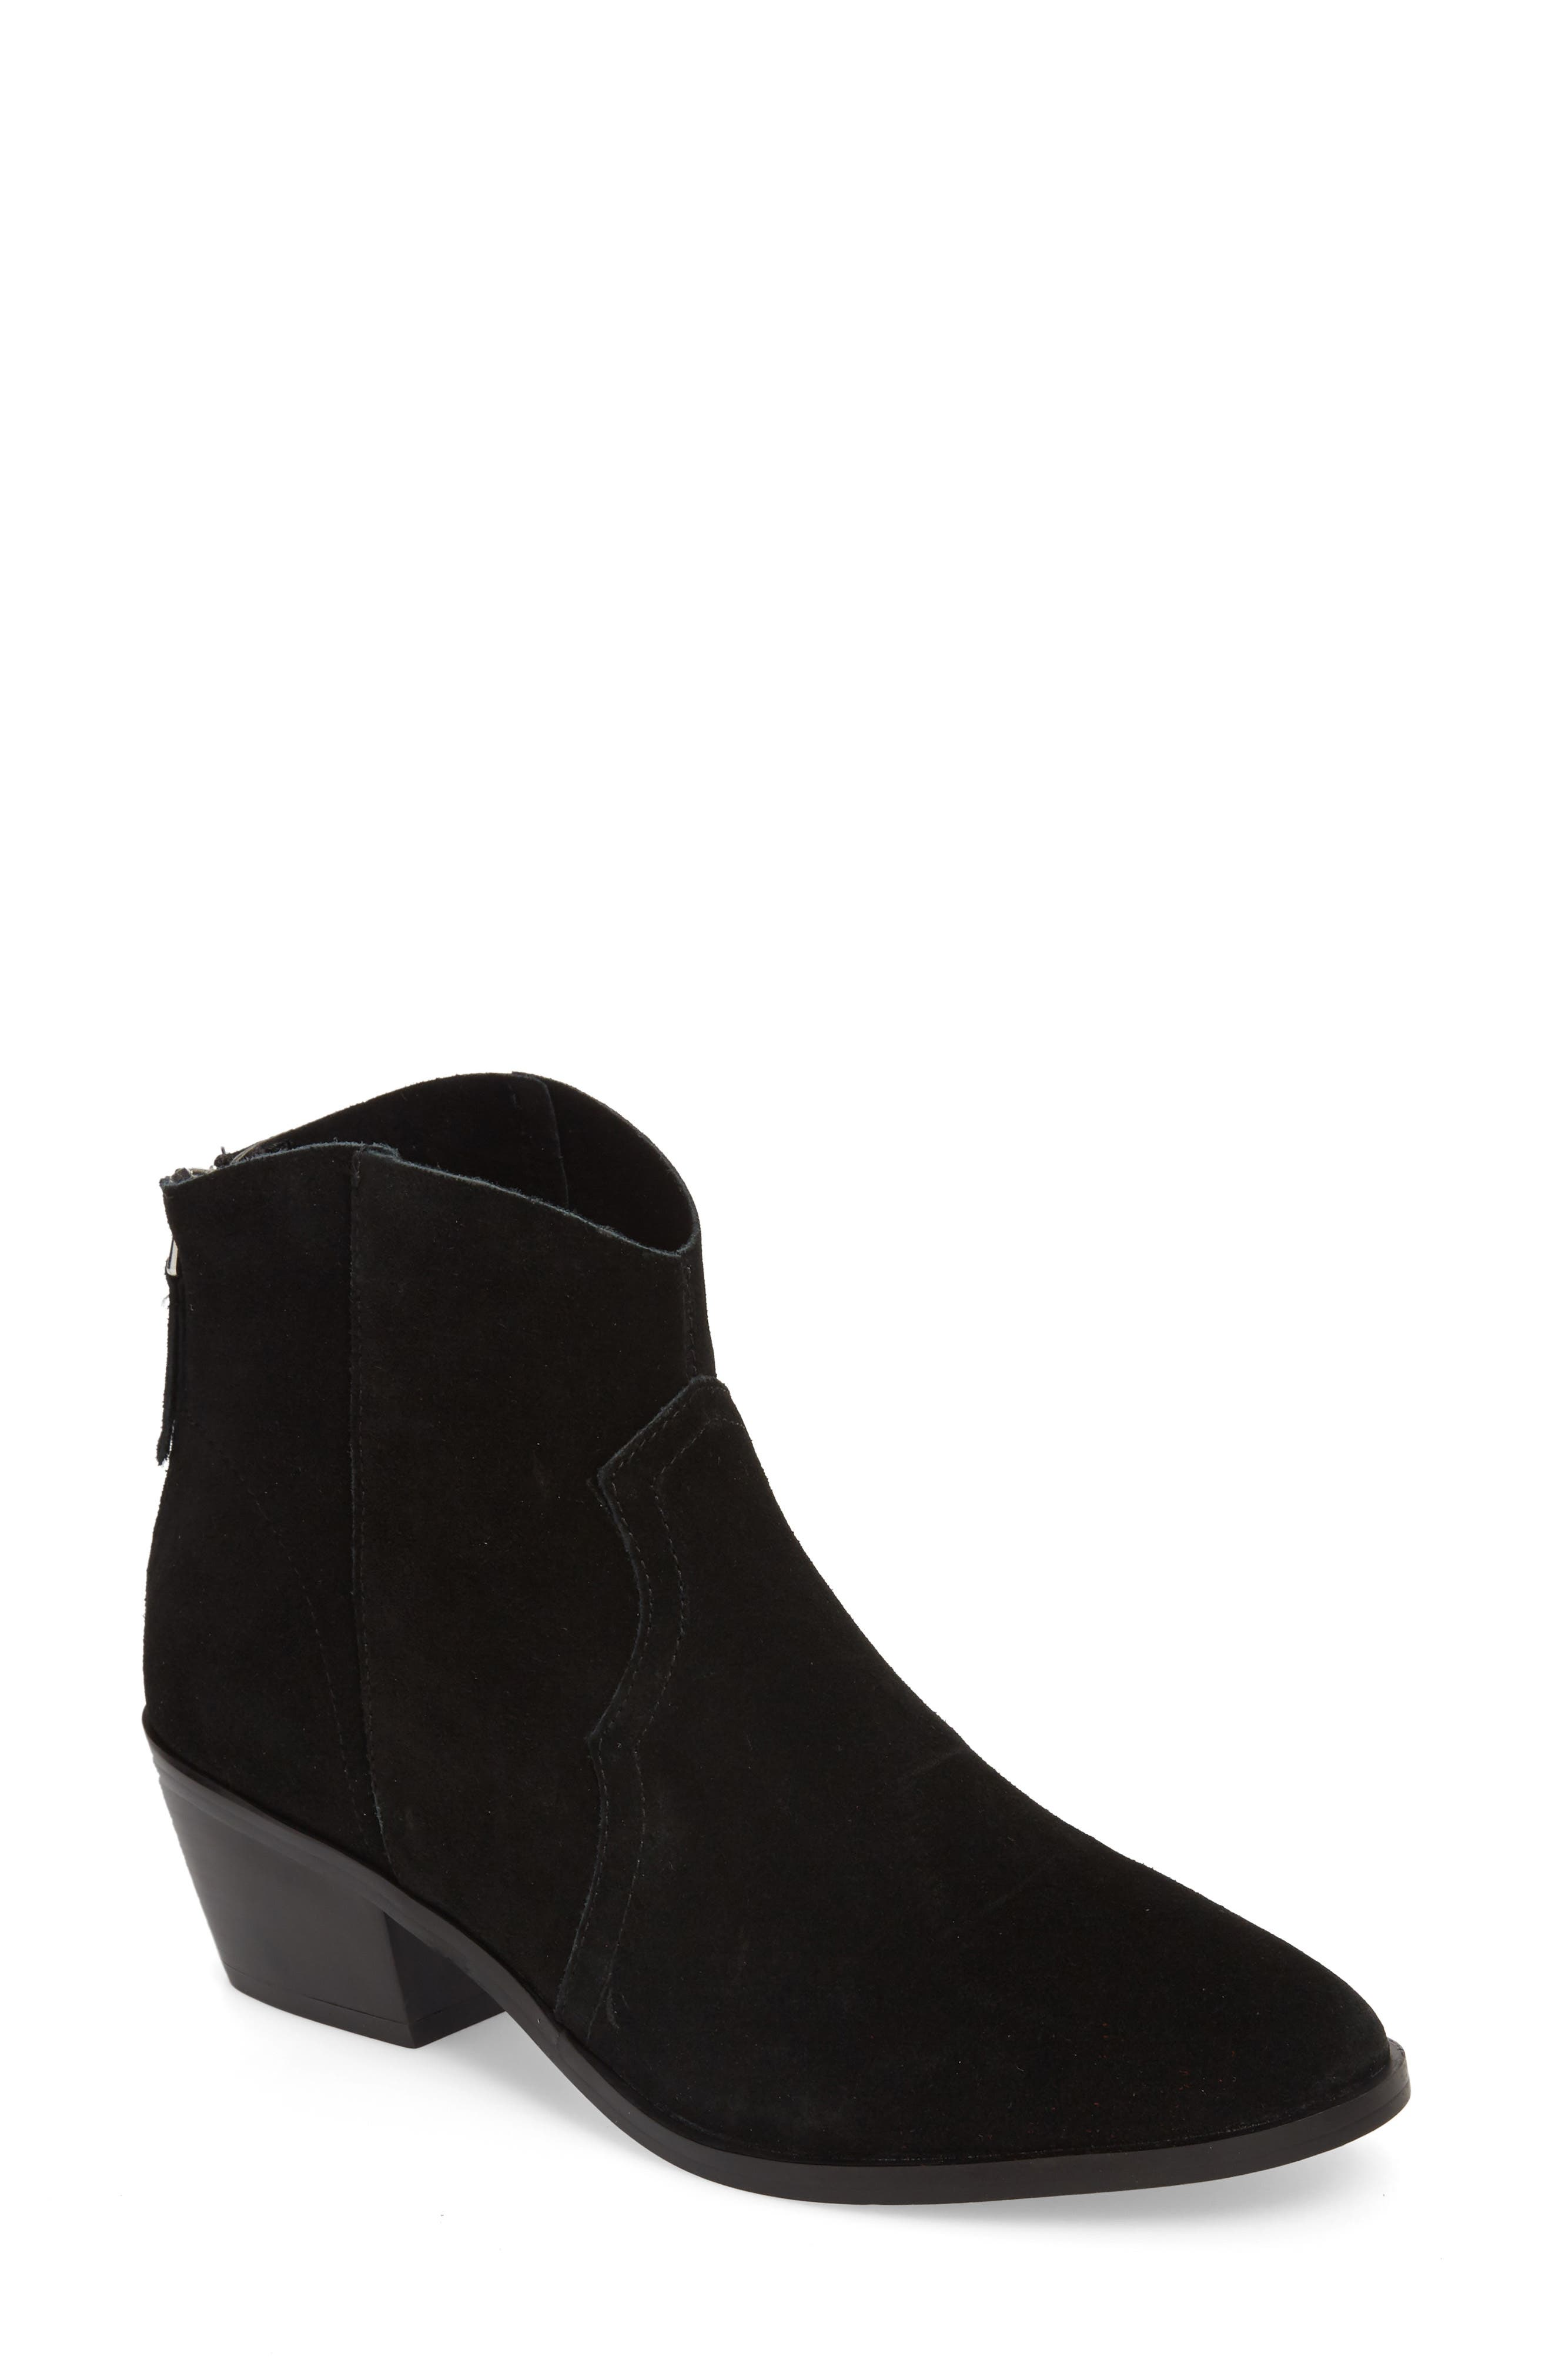 Betty Western Bootie,                             Main thumbnail 1, color,                             Black